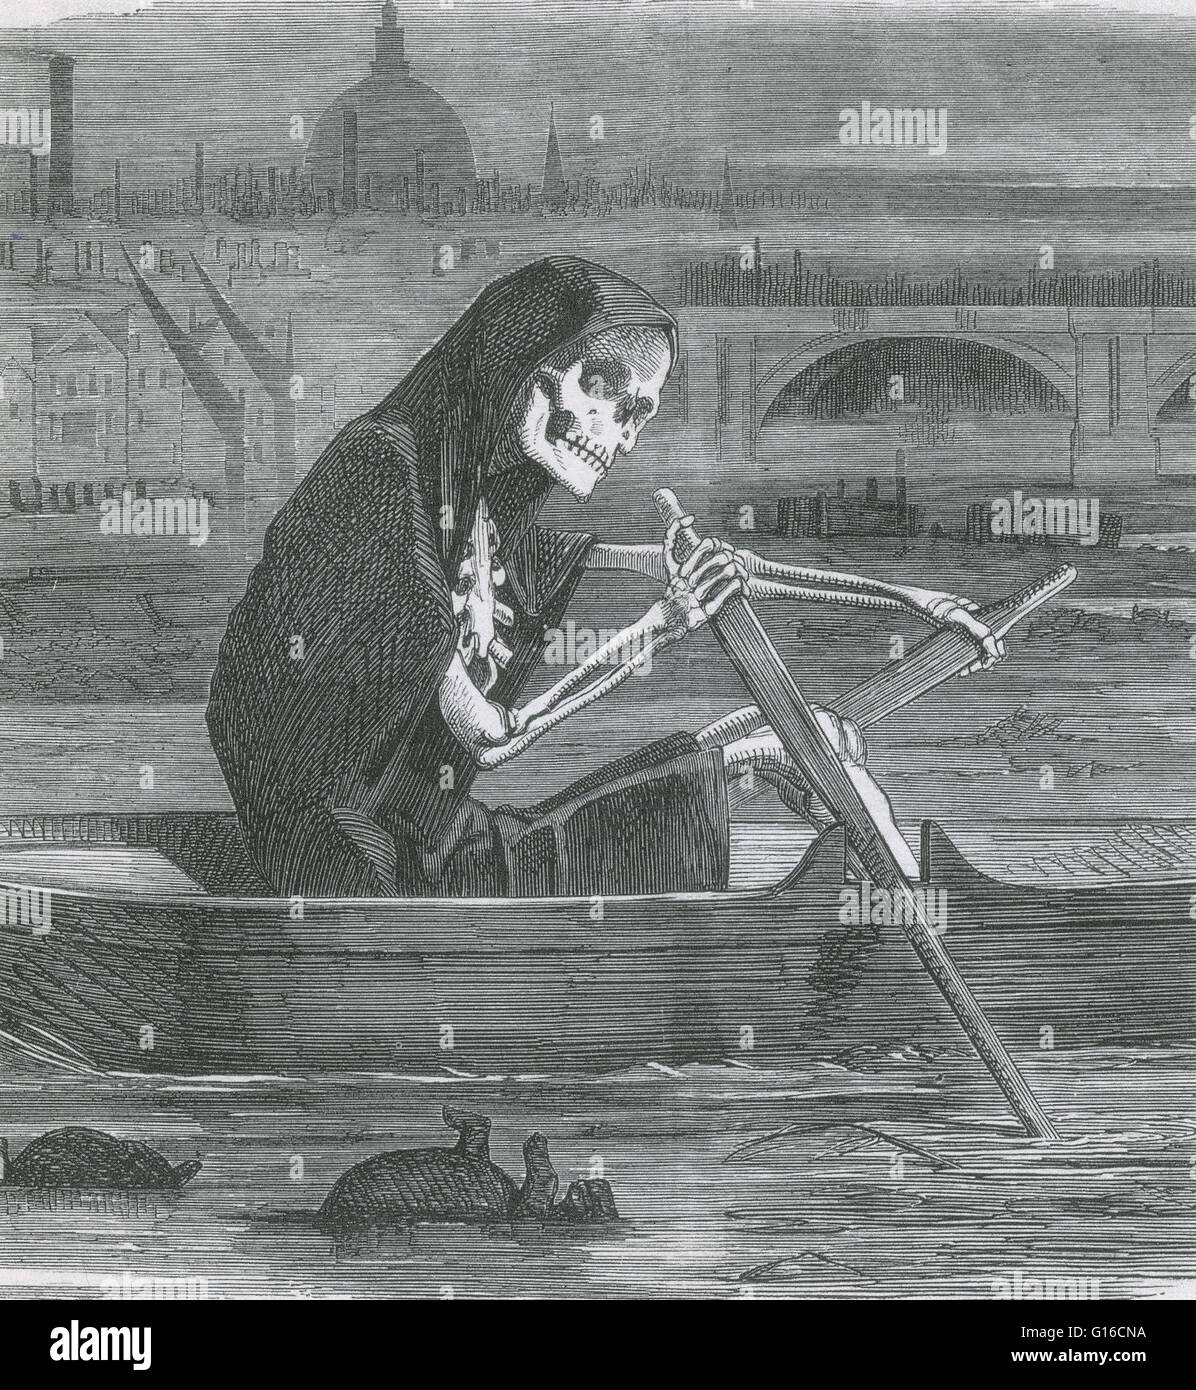 Punch Cartoon from 1858, during the Great Stink in London, depicting the Thames as the River Styx. In the summer - Stock Image